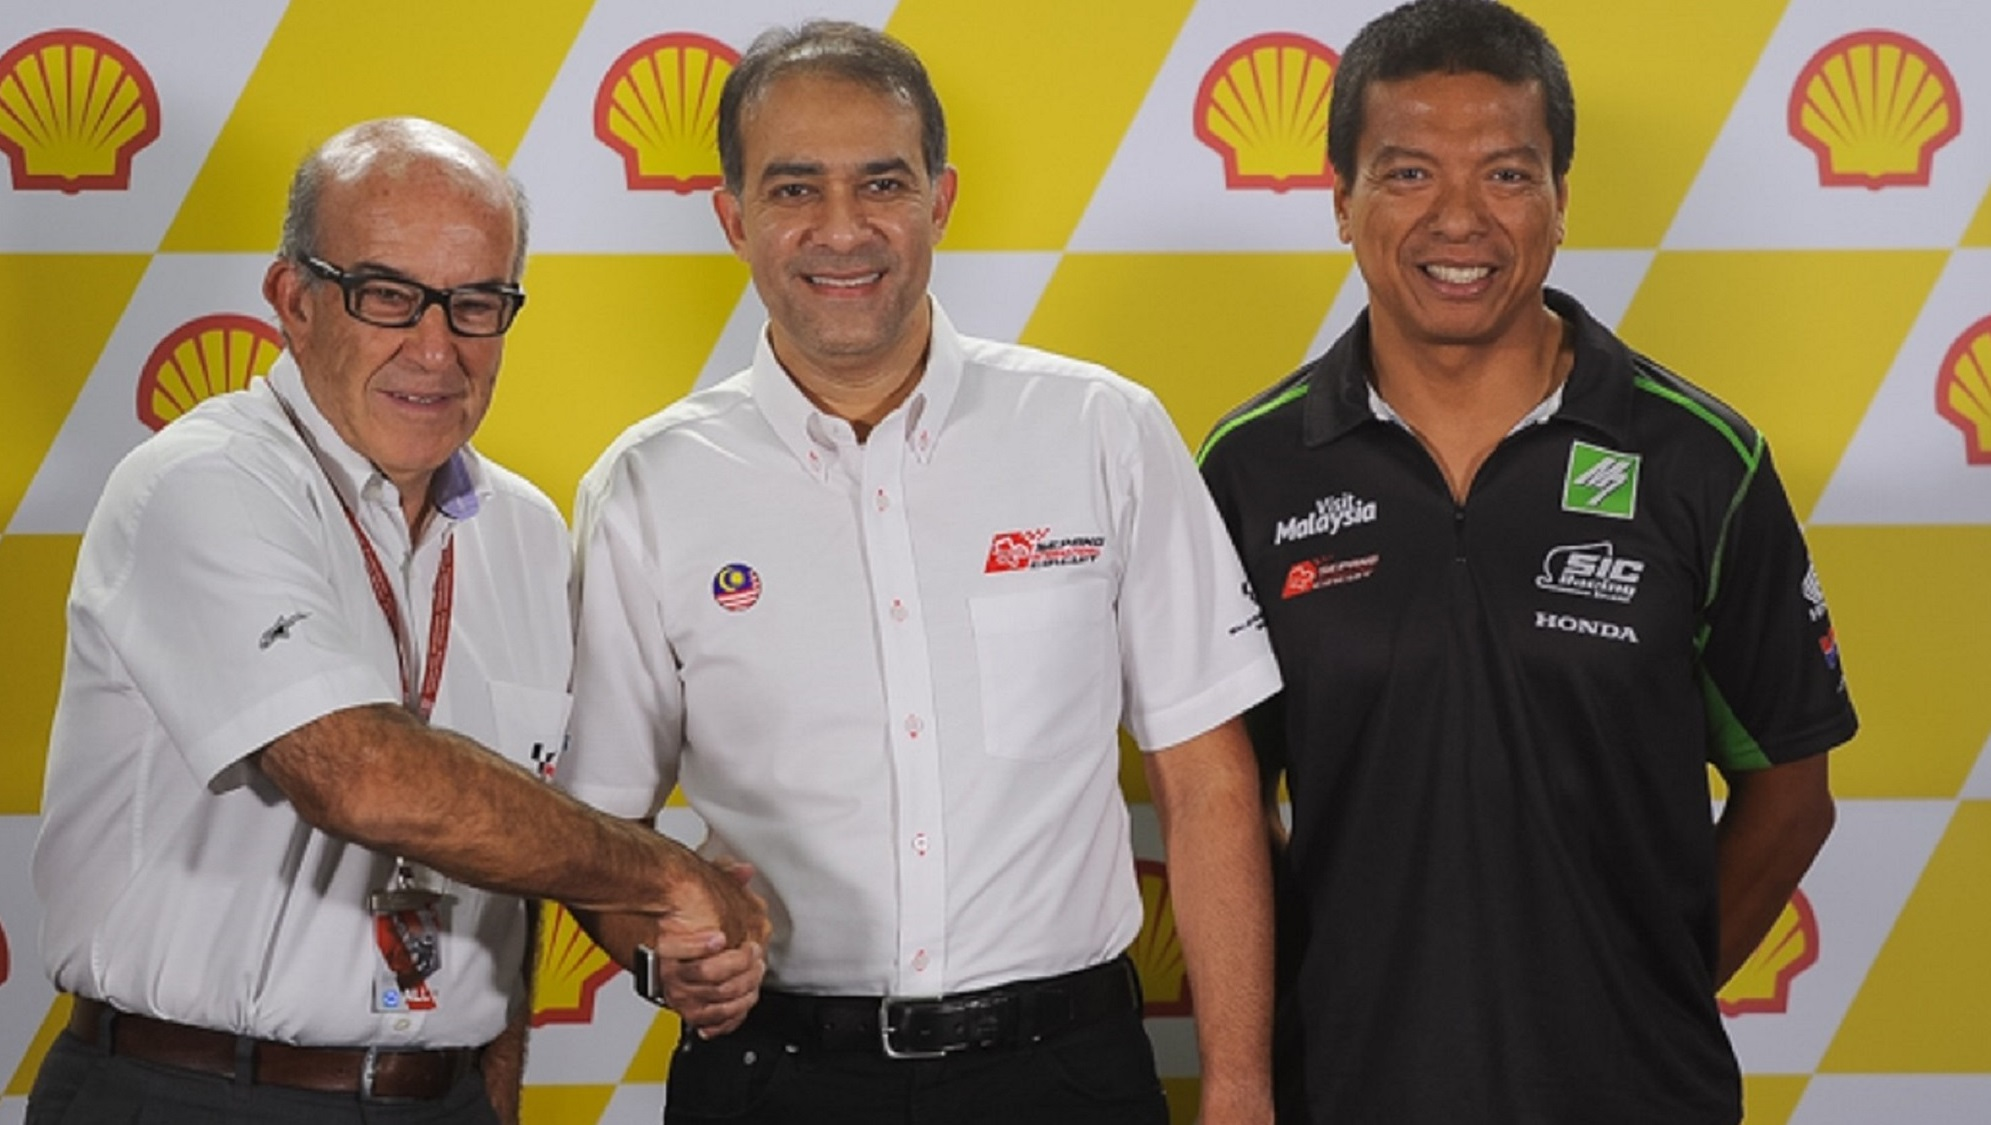 Dorna, the promoter and worldwide rights holder for the MotoGP World Championship signed the agreement with SIC on Saturday, 29 October 2016 on the sidelines of the 26th edition of the Malaysia Motorcycle Grand Prix at the circuit.